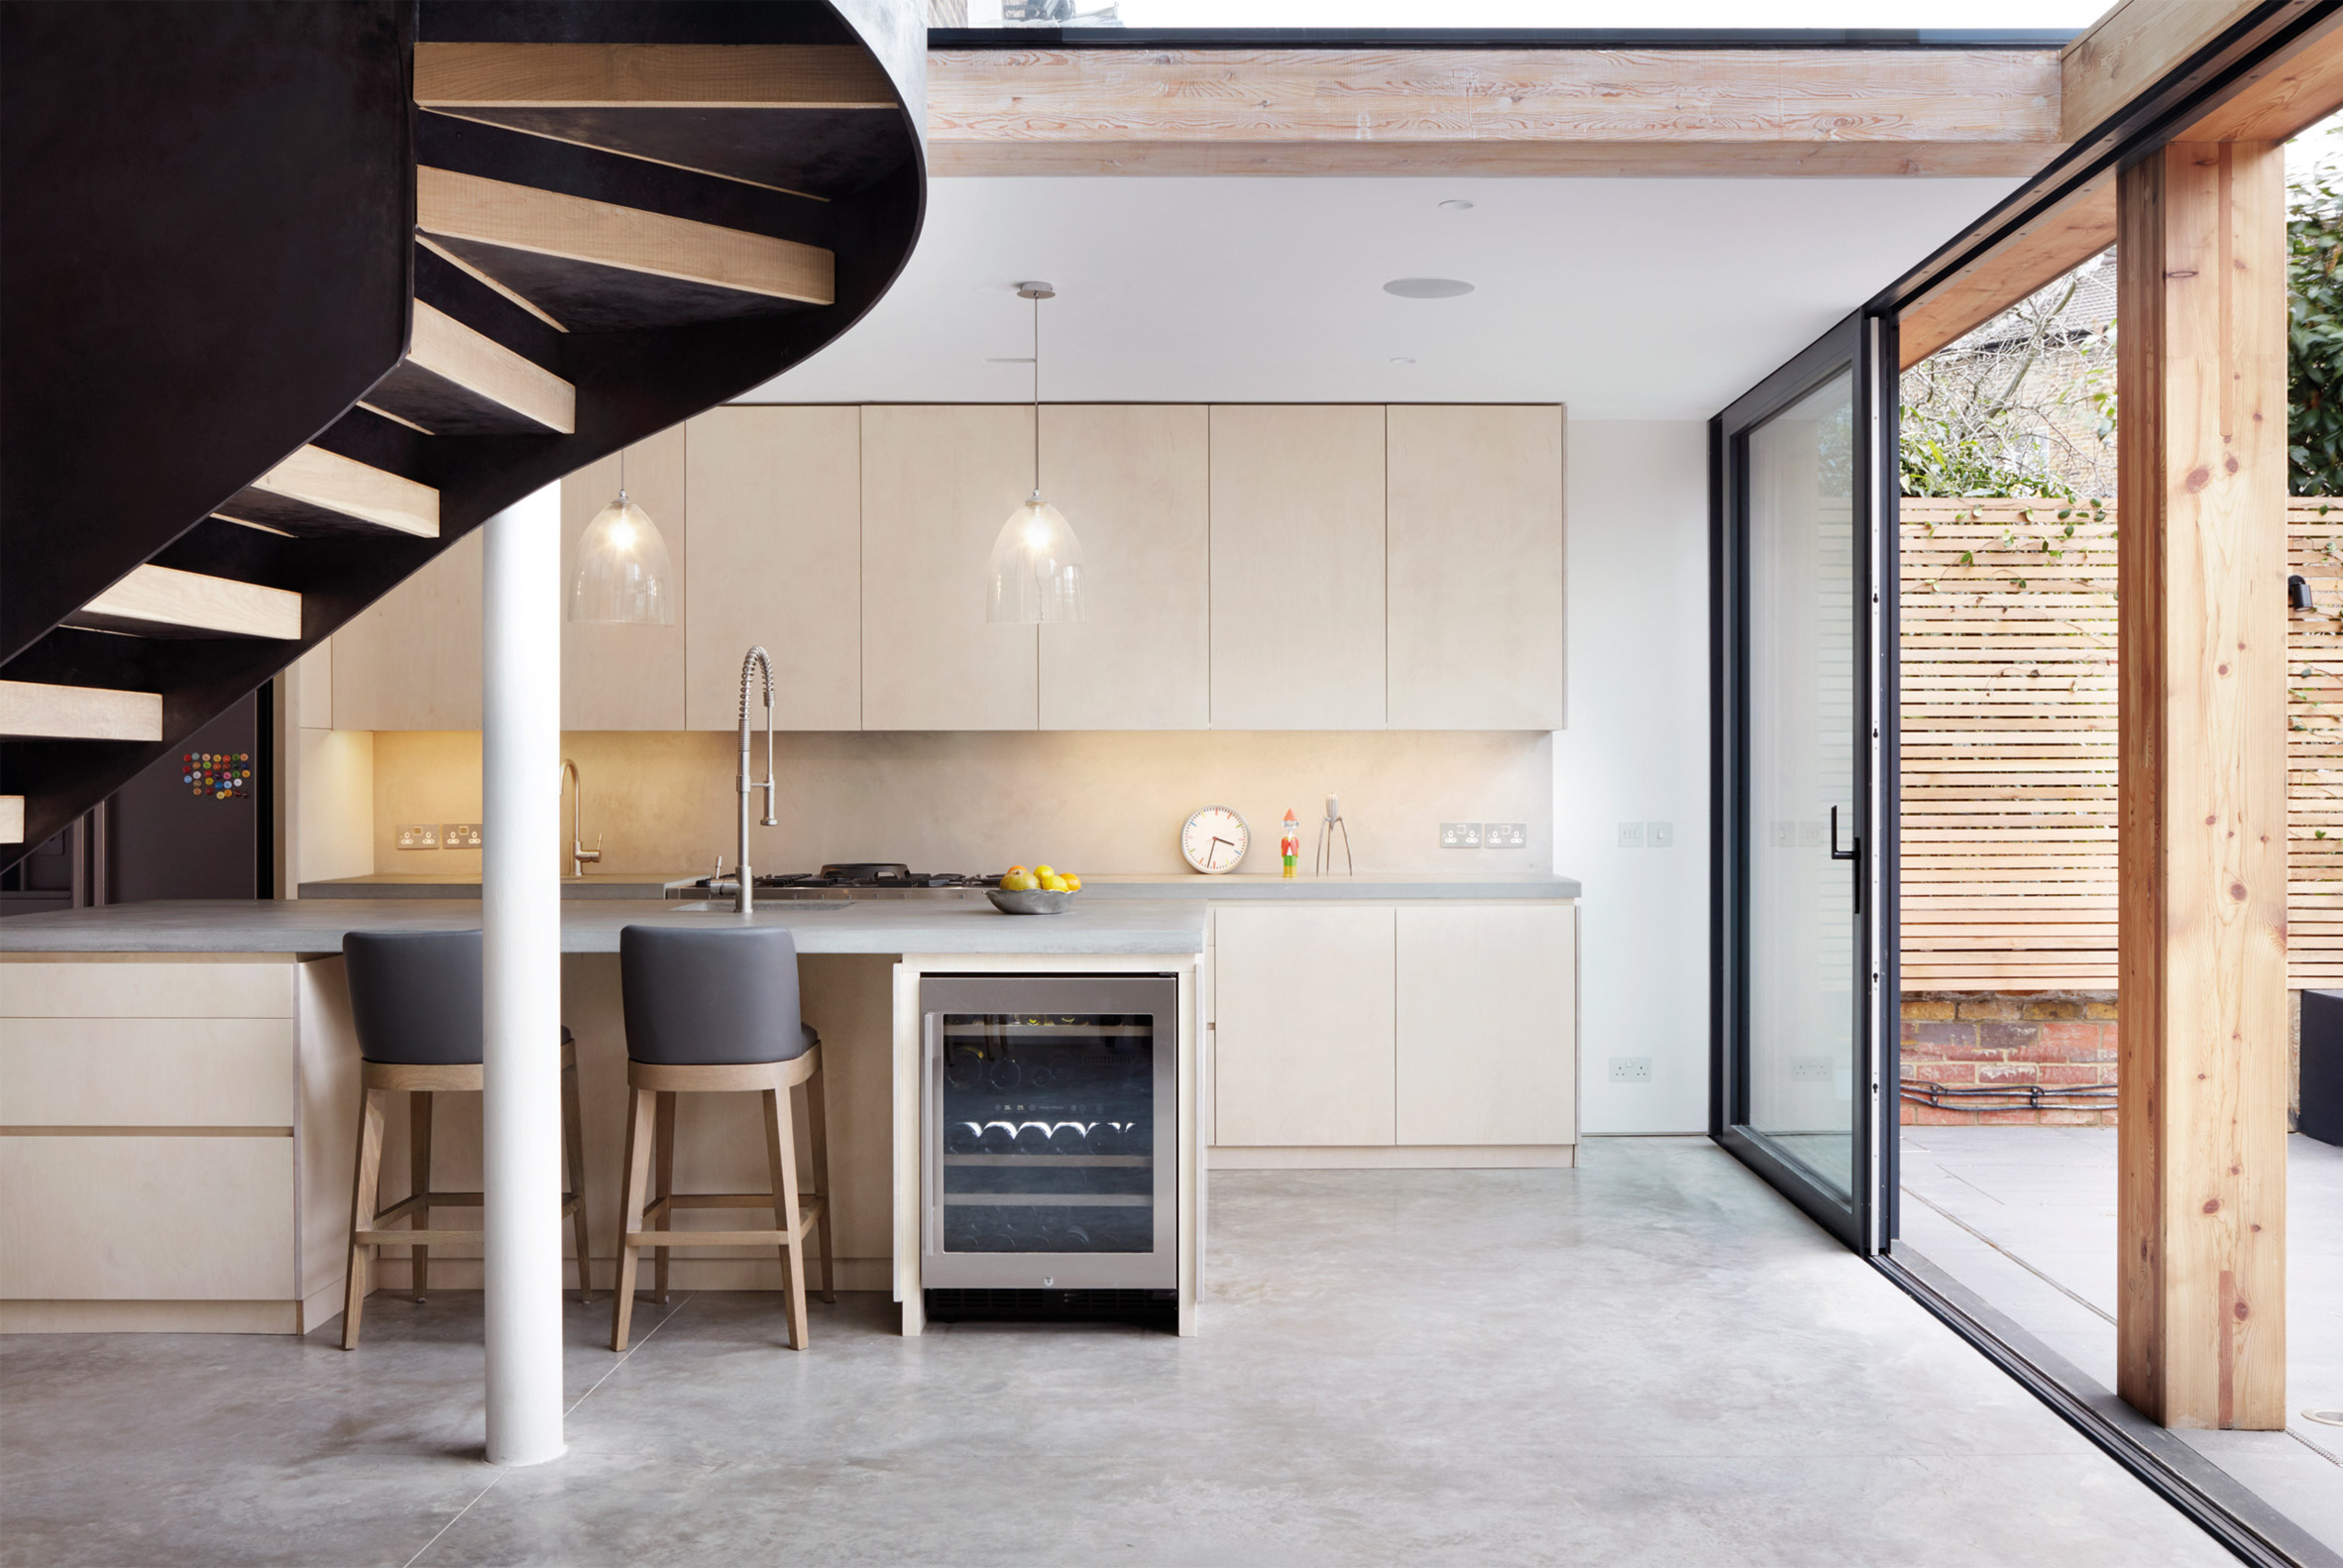 Cousins & Cousins adds laminated timber and glass extension to brick house in Hackney